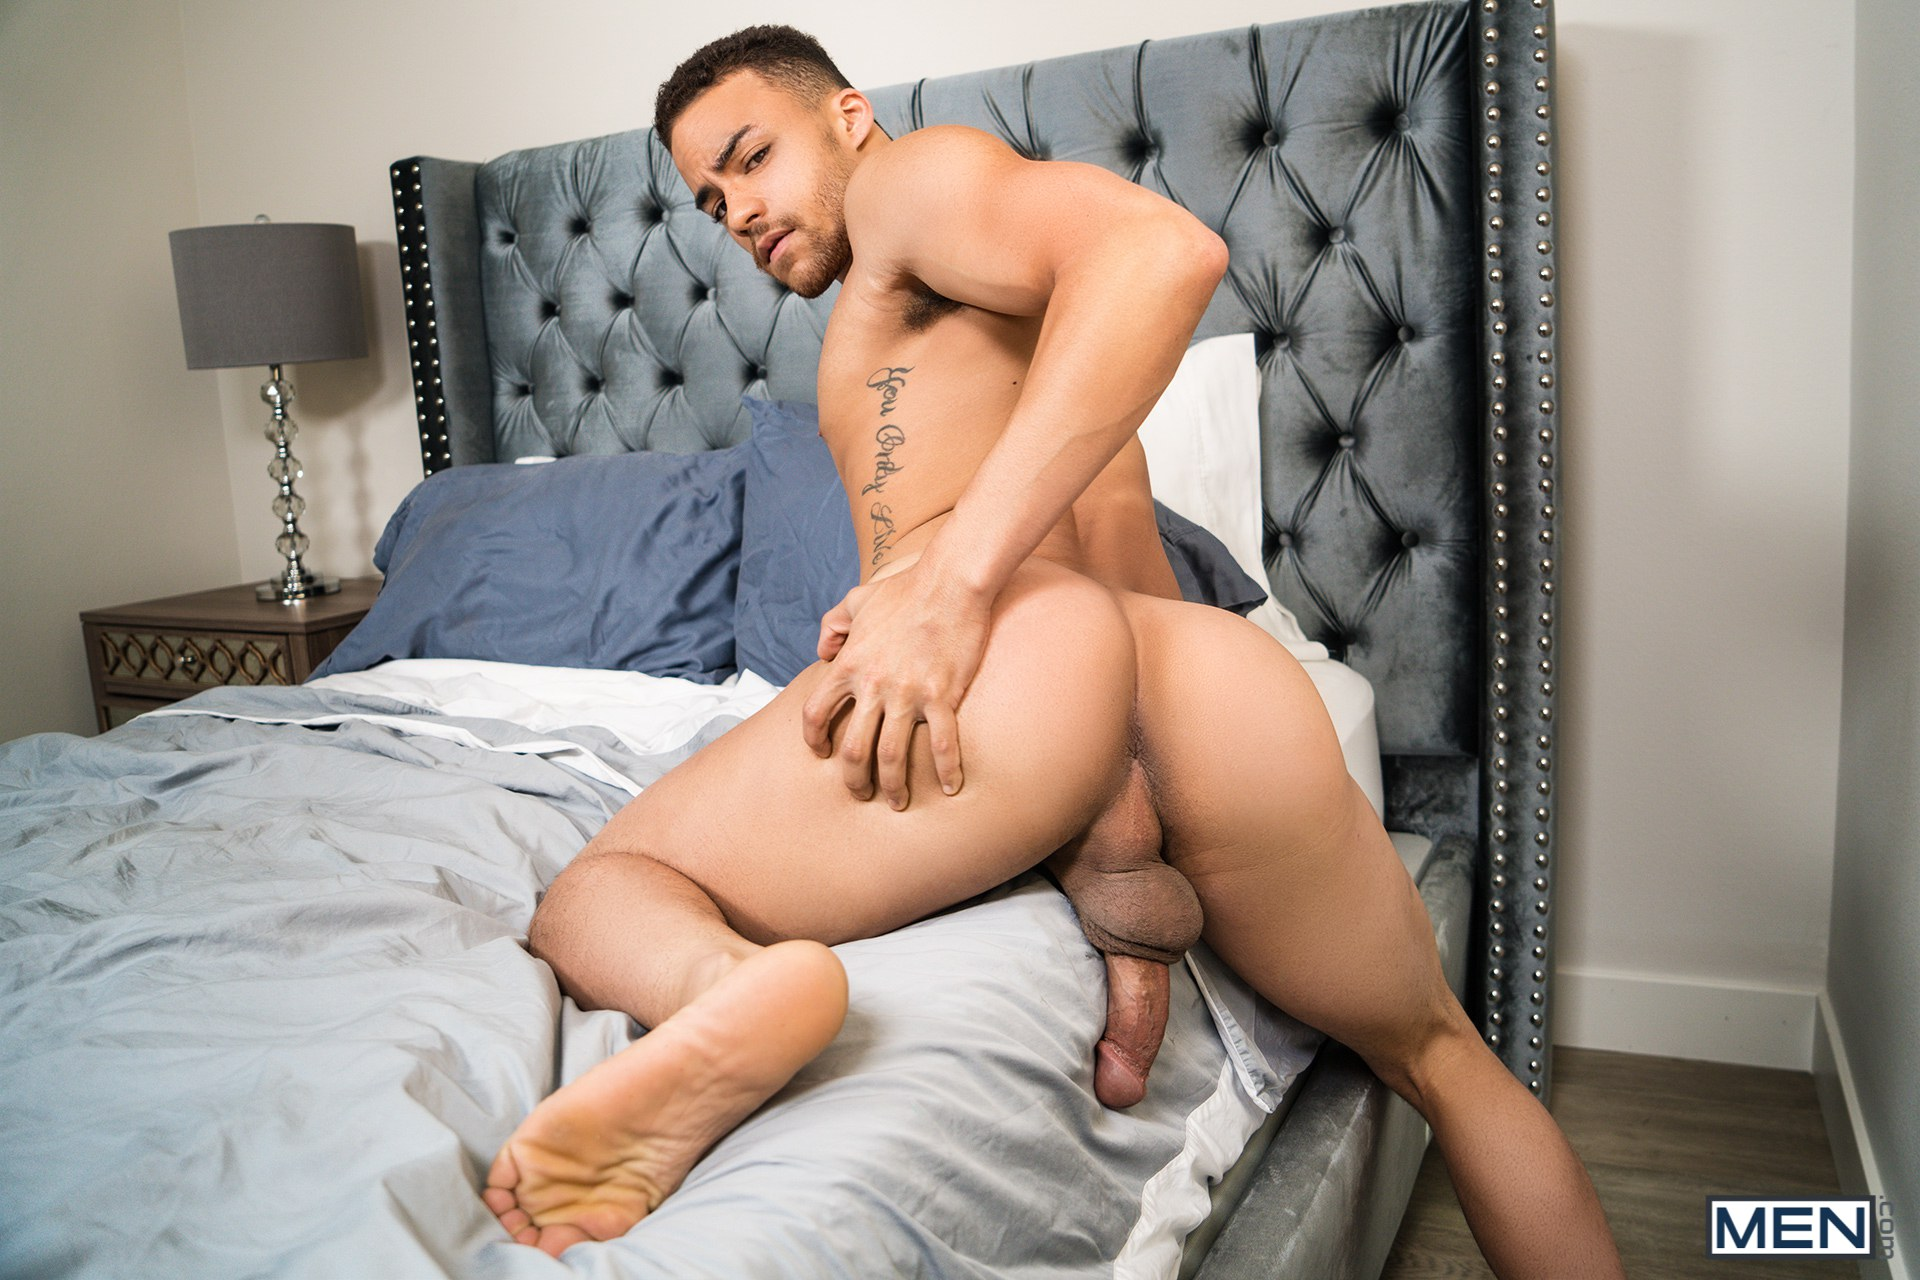 Gay porn star Beaux Banks and Mason Lear fucking